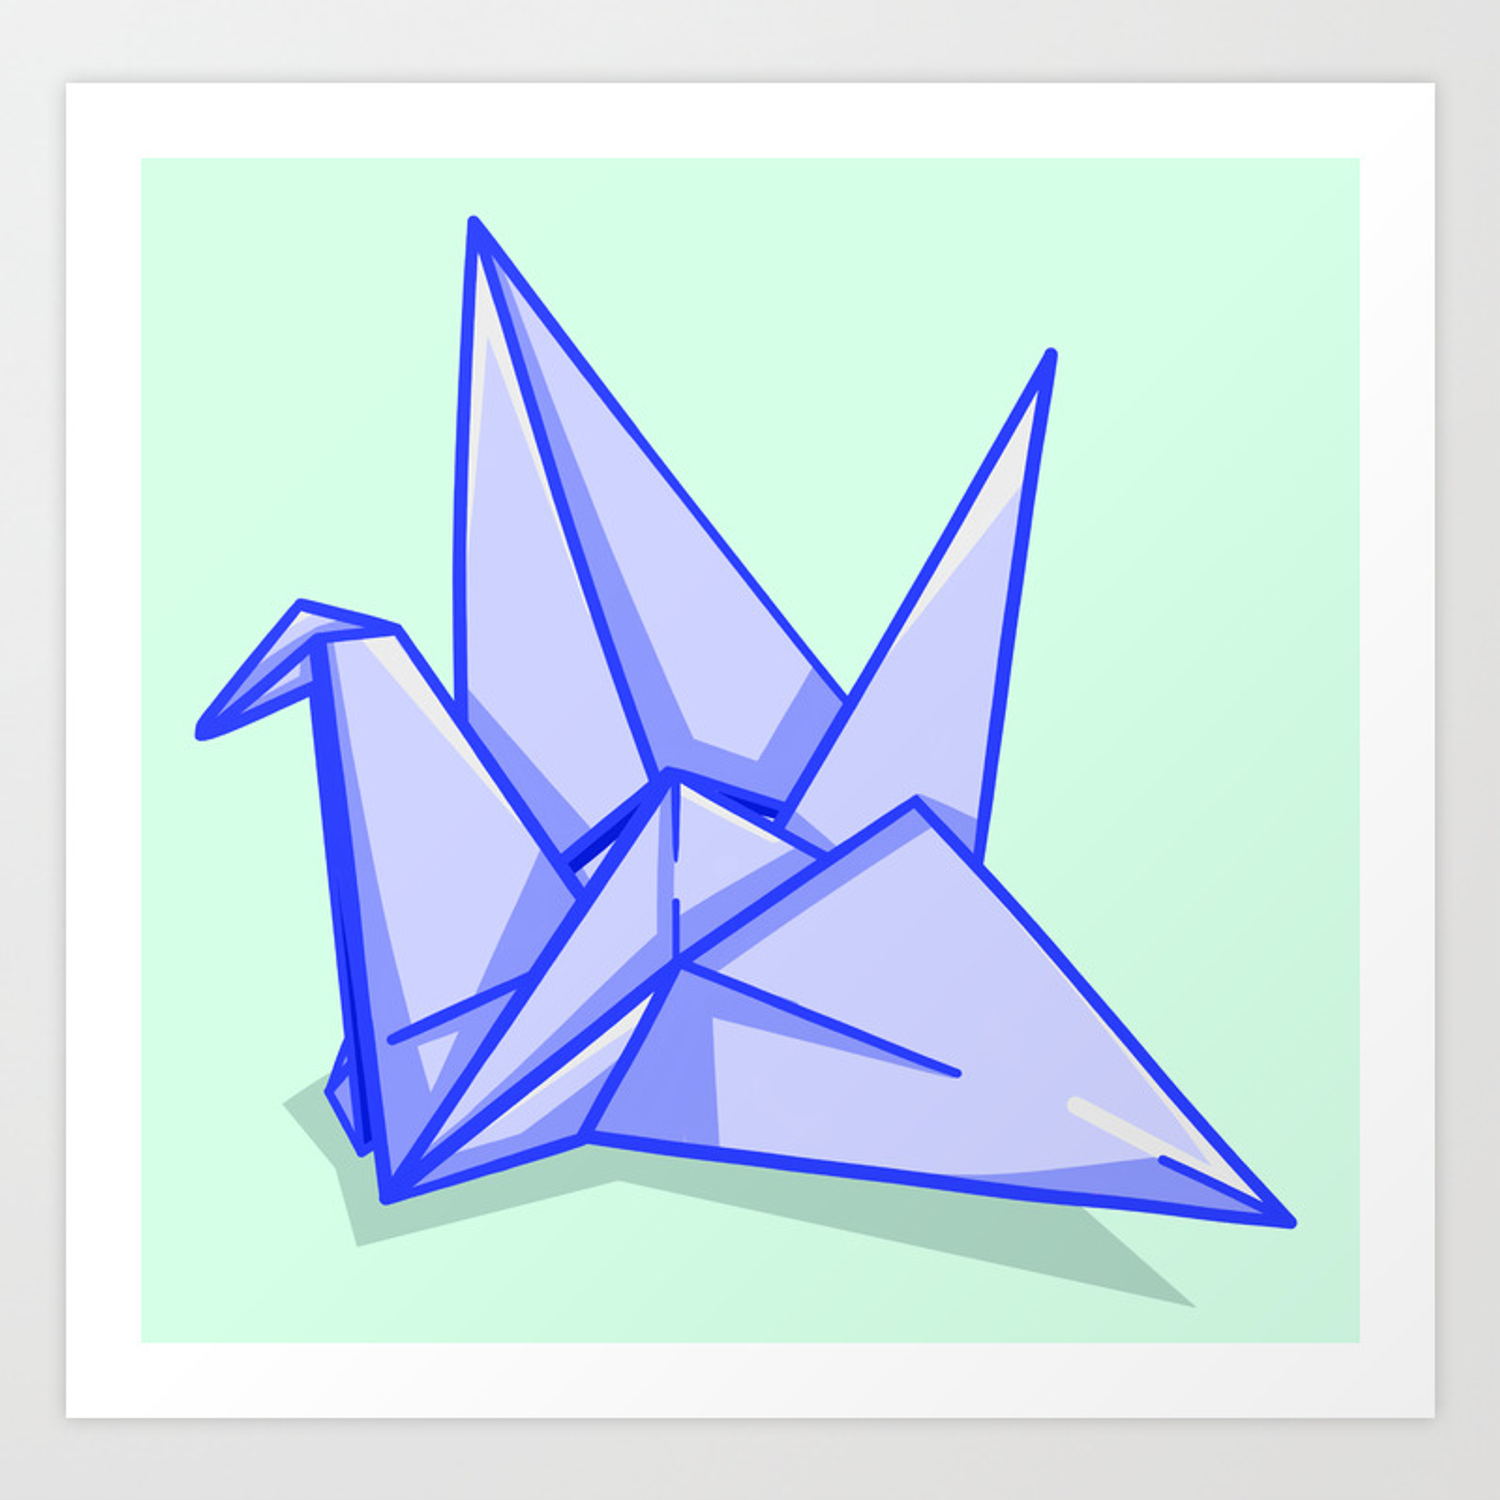 I Folded And Decorated An Origami Crane Every Day, For 1000 Days ...   1500x1500